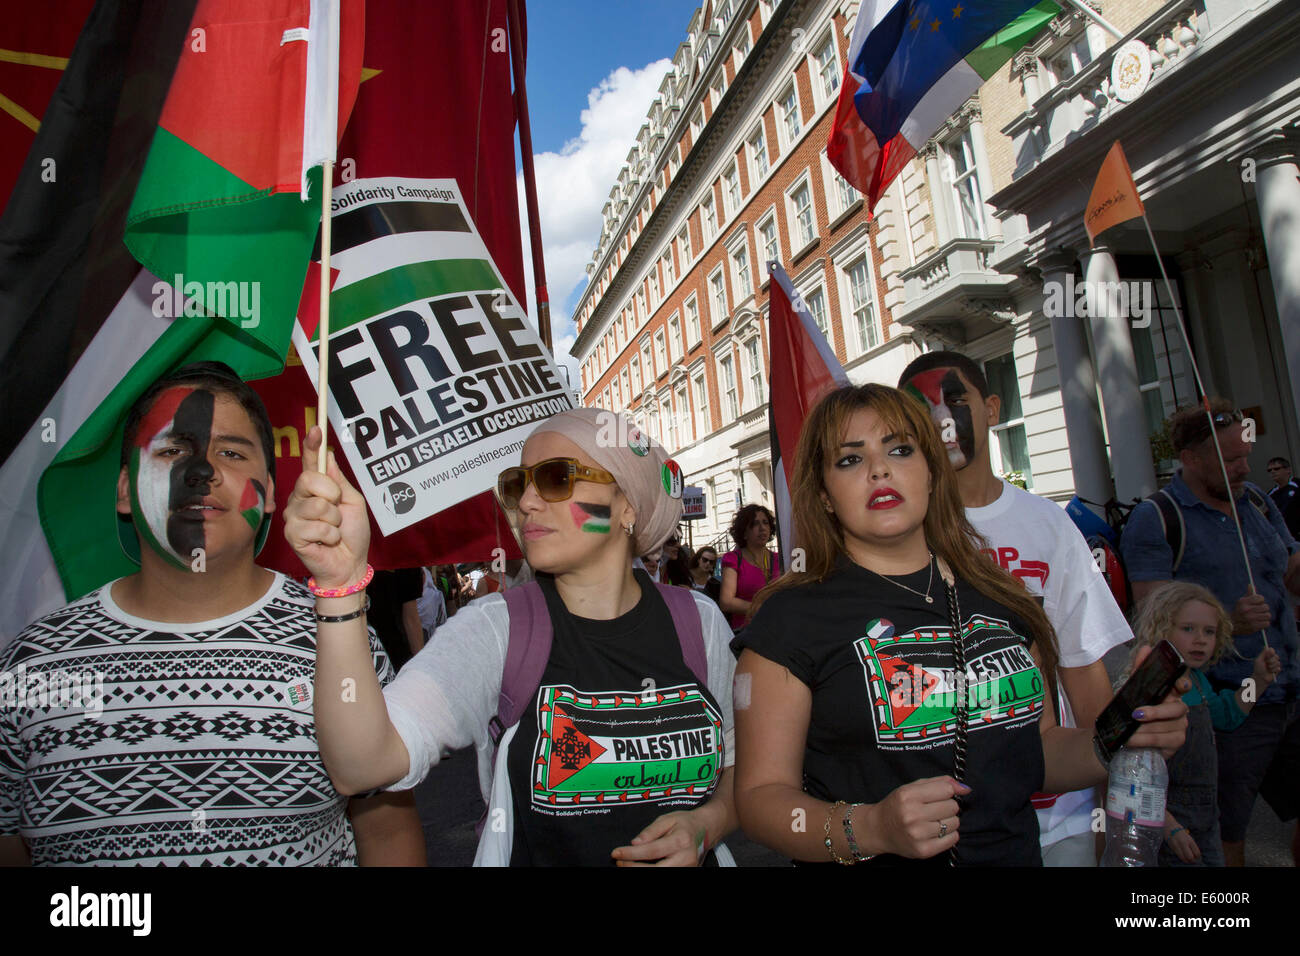 London, UK. Saturday 9th August 2014. Pro-Palestinian protesters in their tens of thousands march through central - Stock Image